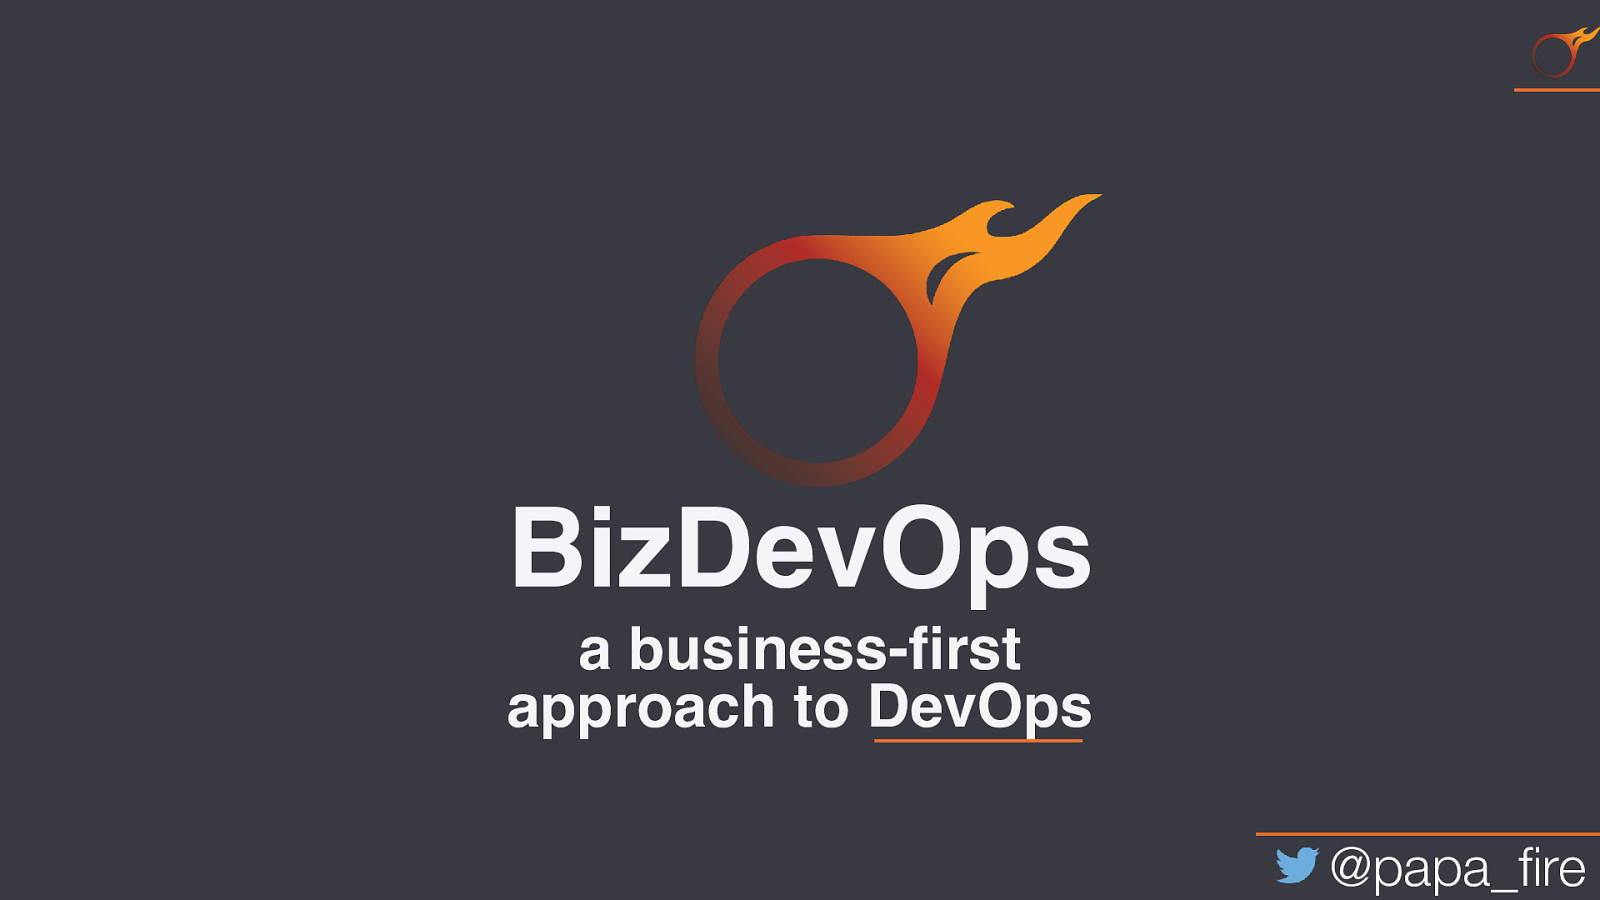 BizDevOps: business-first approach to DevOps